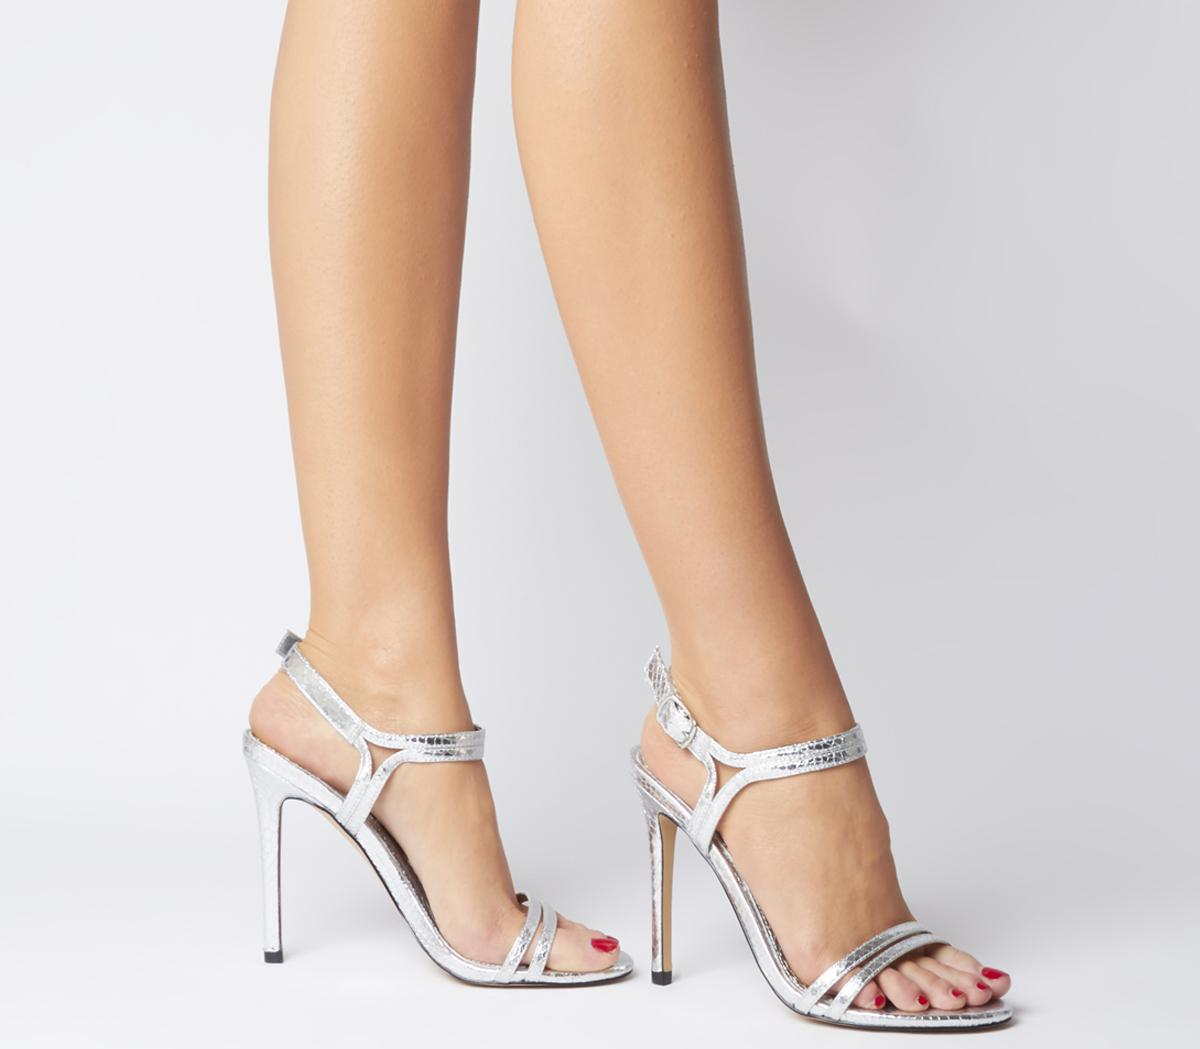 Office Hot Cake Strappy Sandals - Wide